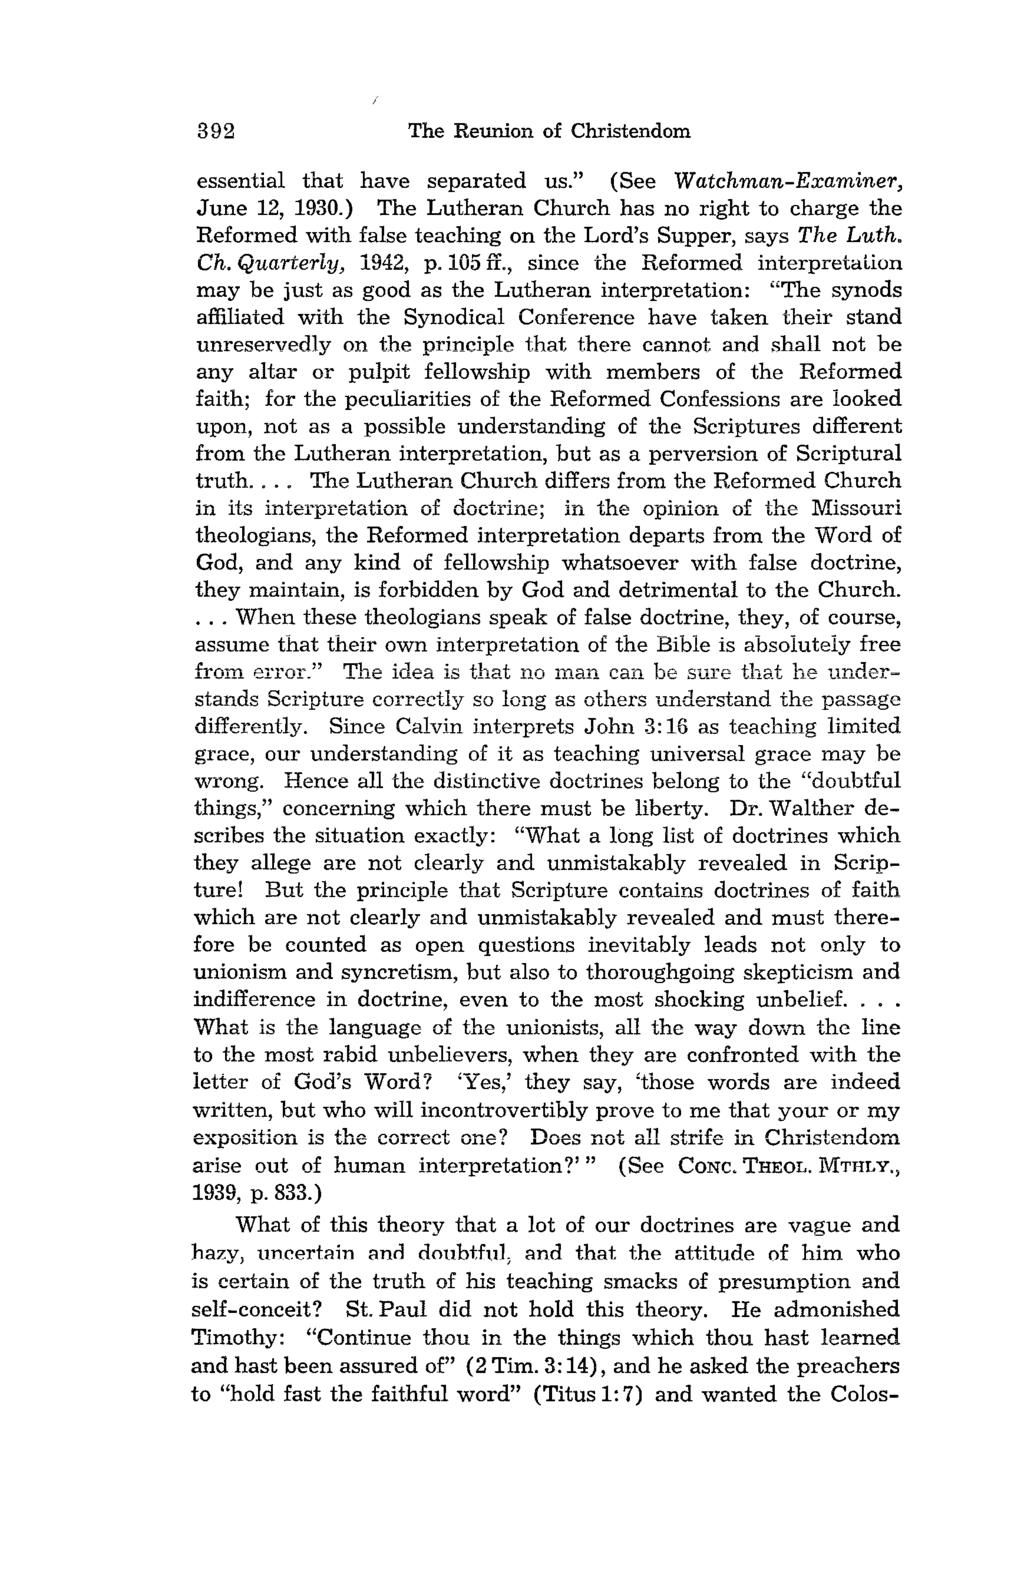 "392 The Reunion of Christendom essential that have separated us."" (See Watchman-Examiner, June 12, 1930."